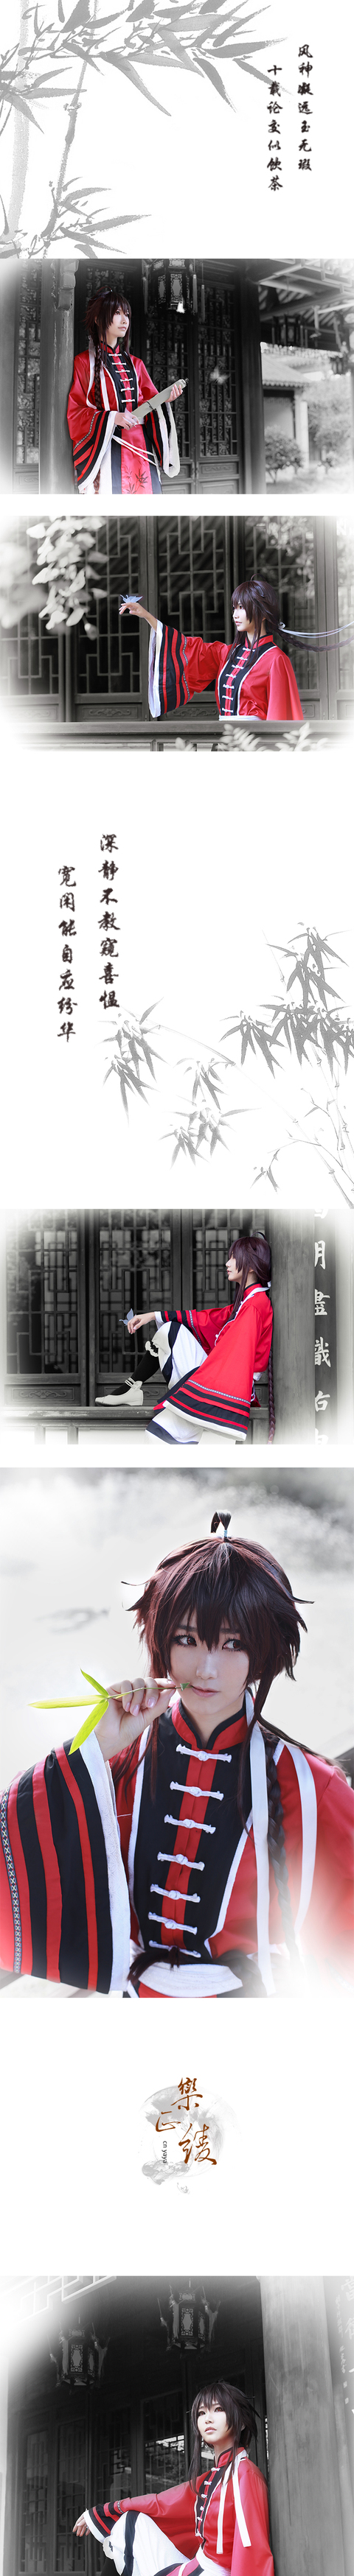 【Cosplay】VOCALOID 美如画-小柚妹站